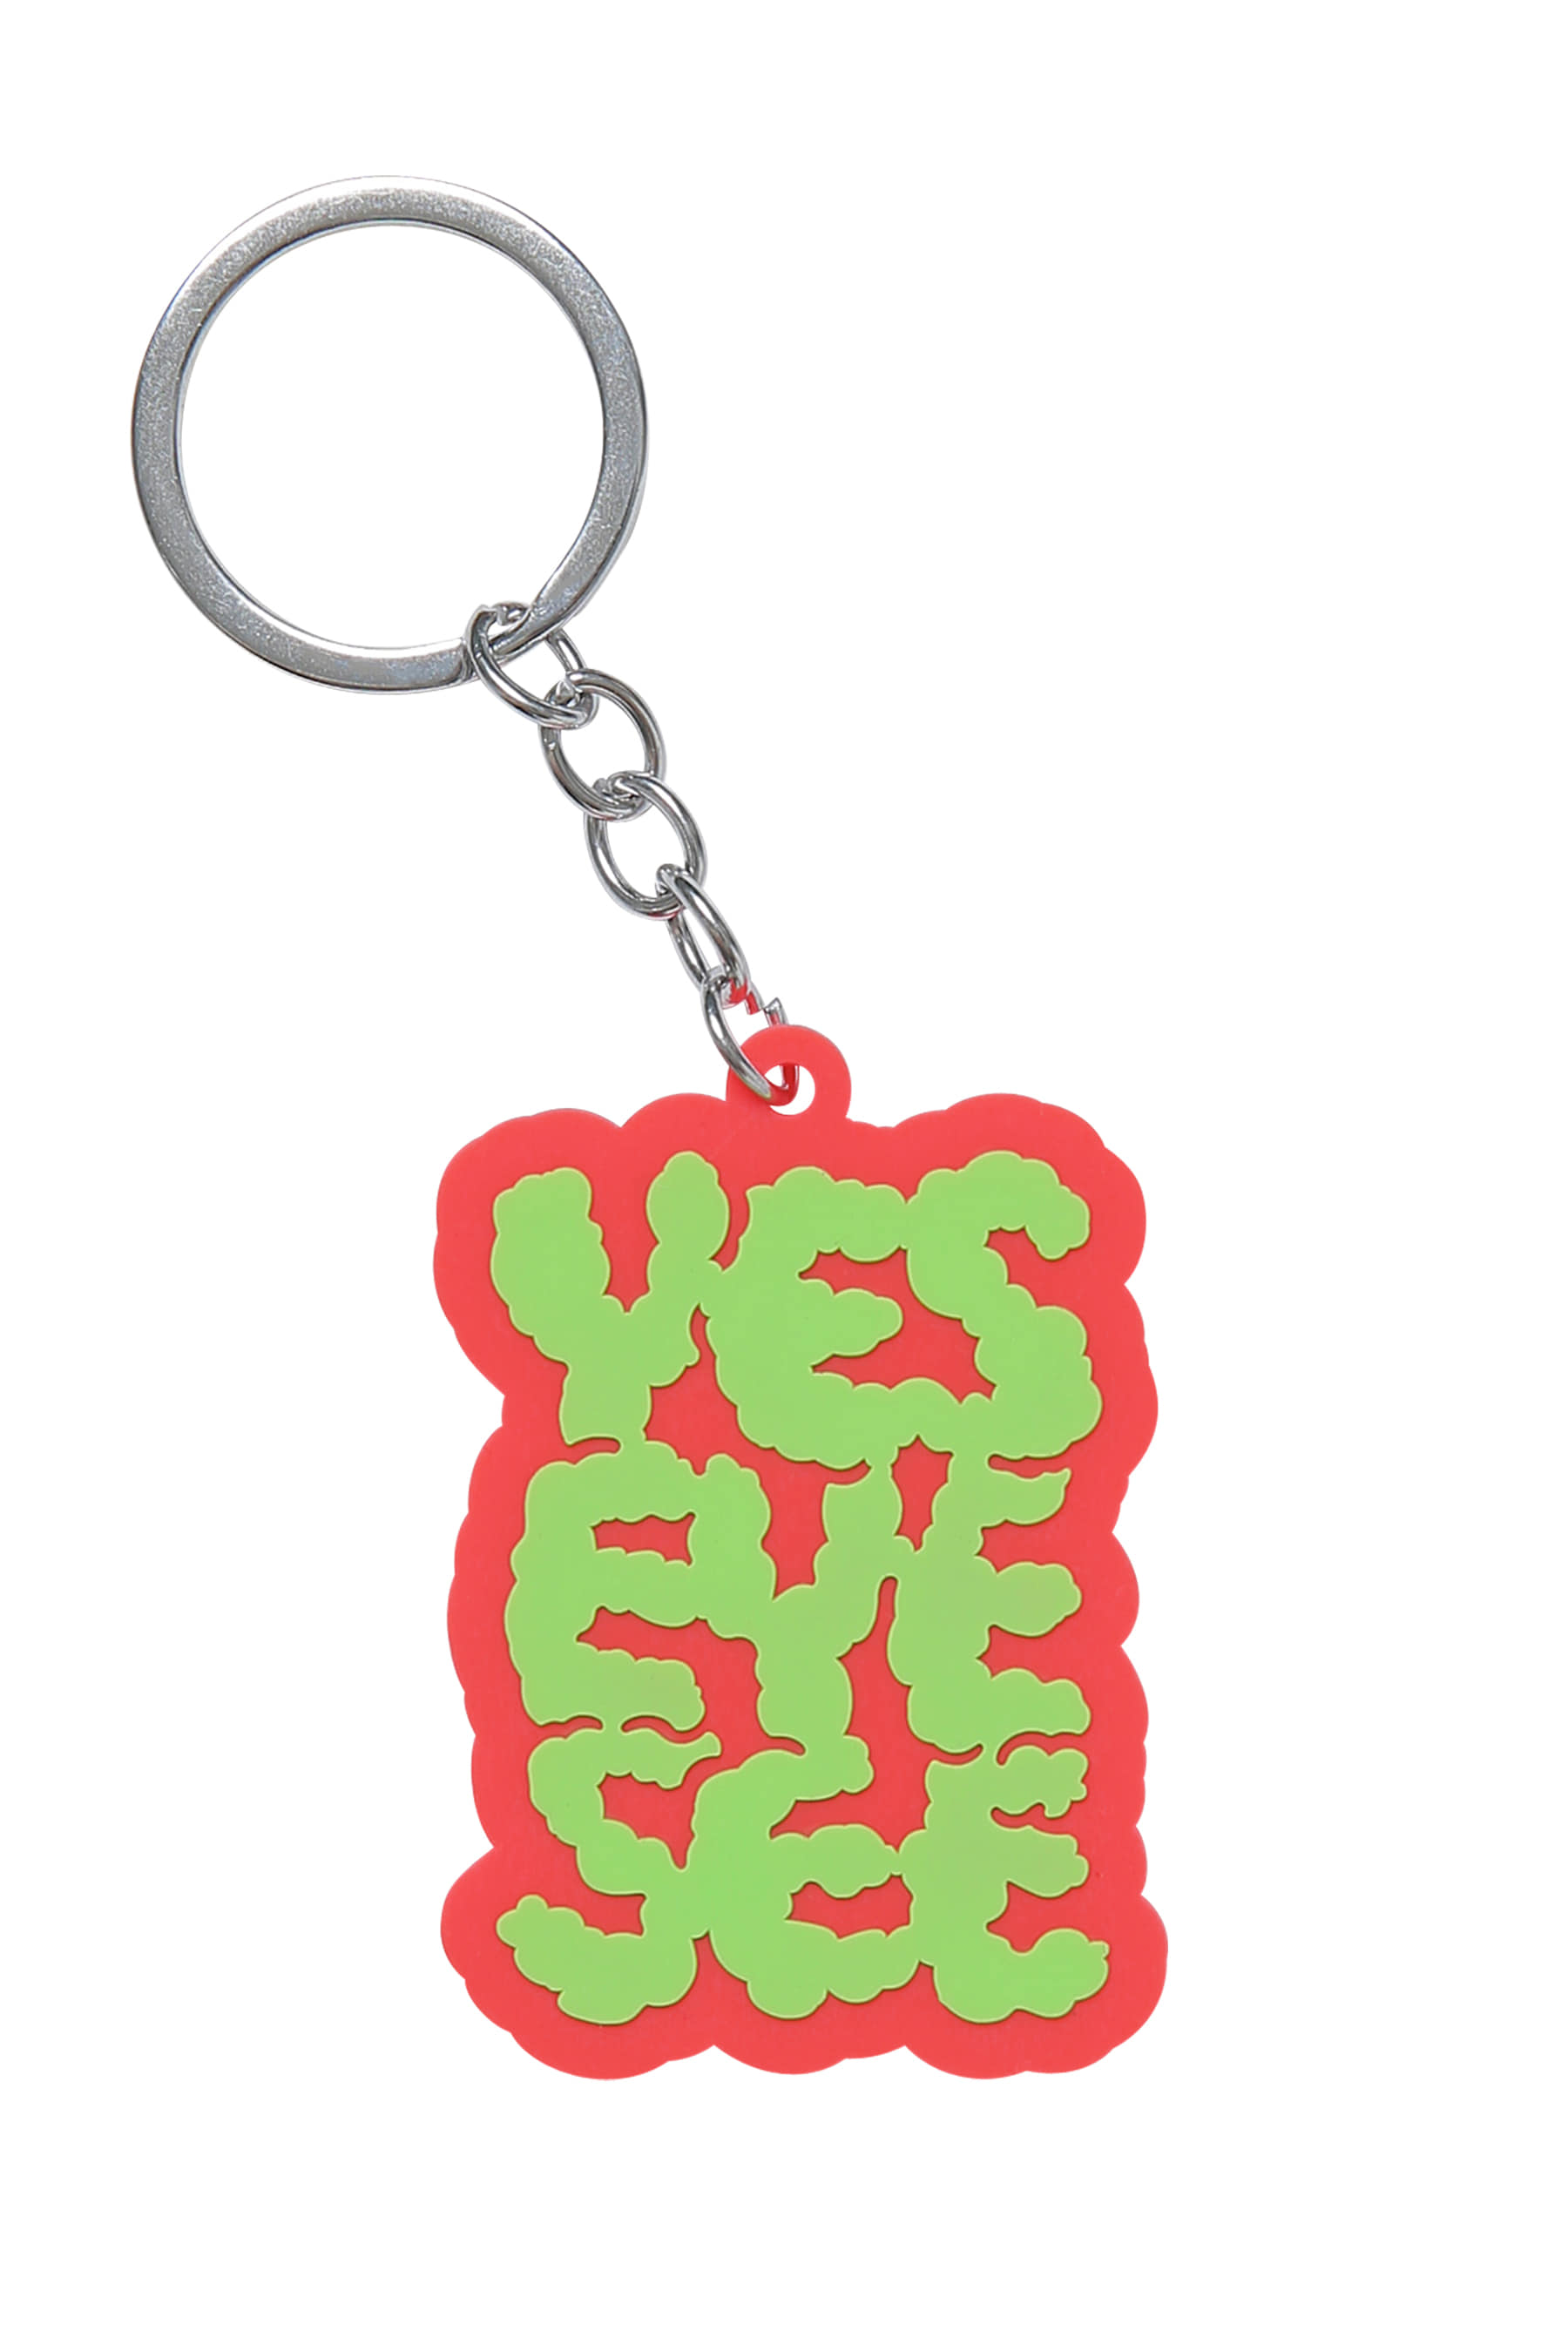 Y.E.S  Cloud keyring Red